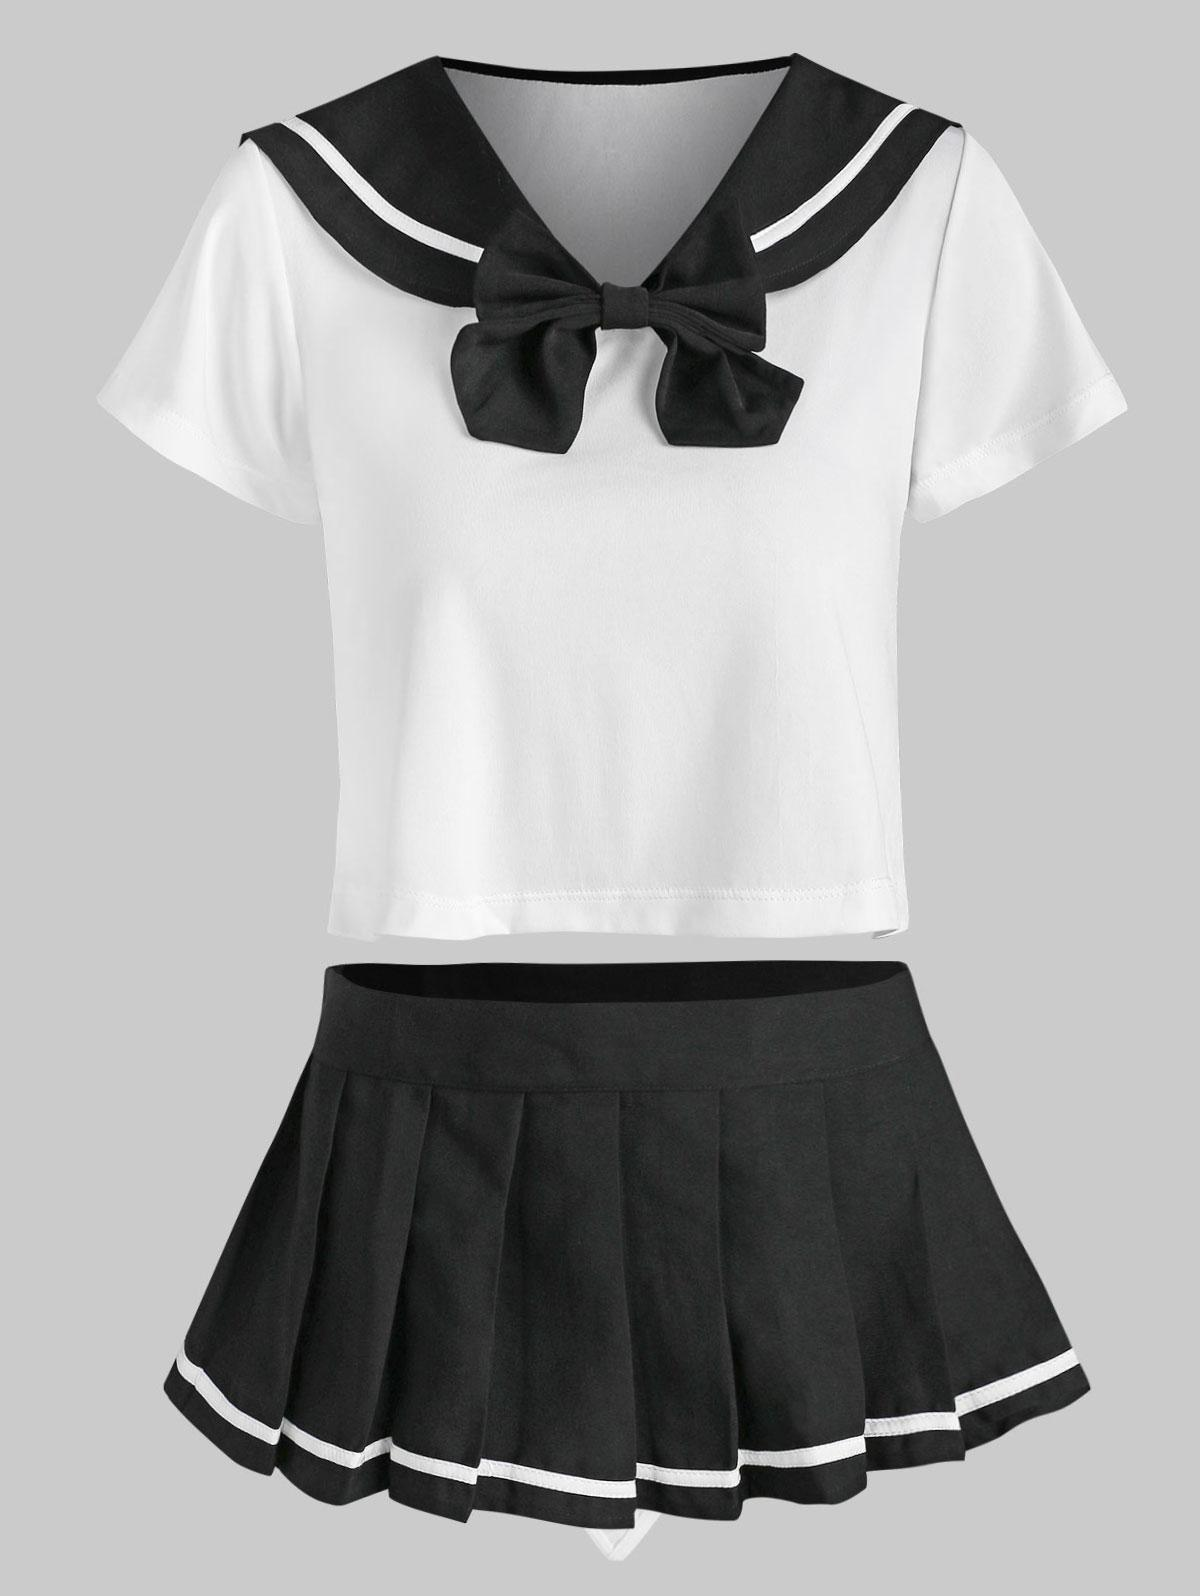 Bowknot Lingerie Cosplay Students Costume Set